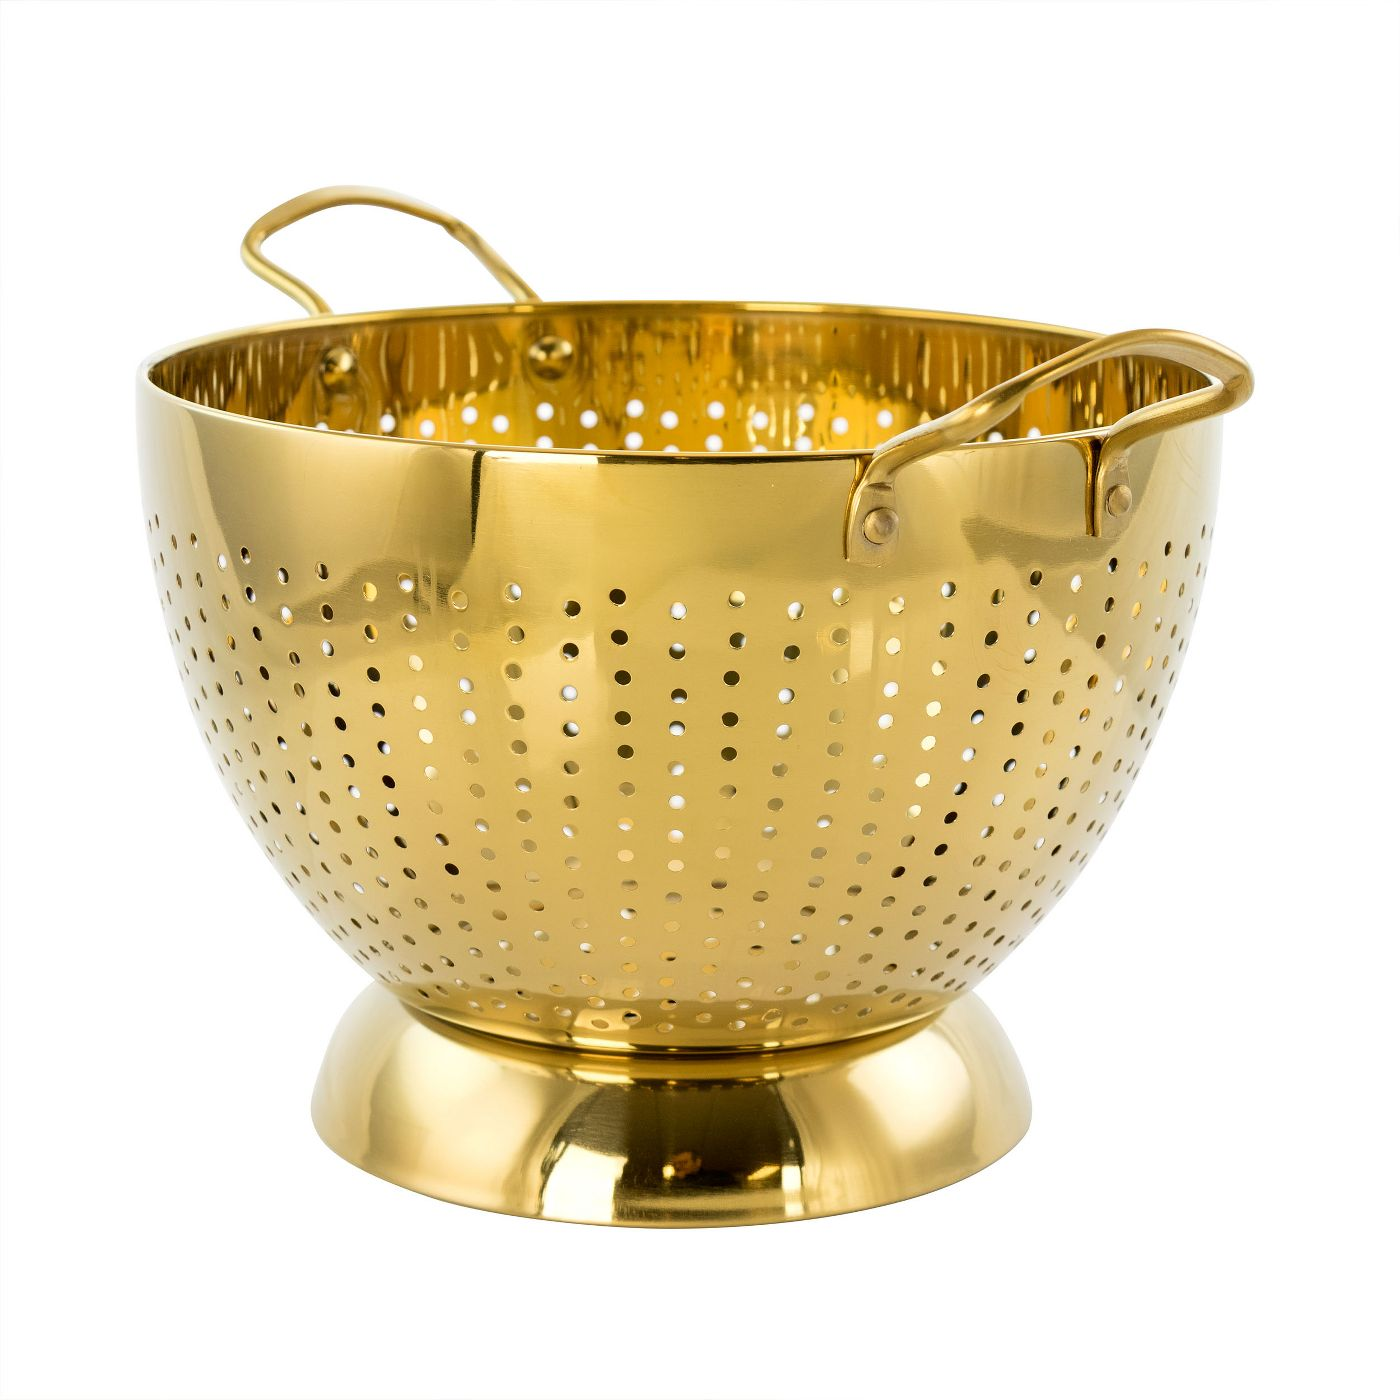 WEEKLY FINDS + Gibson Home Rose Hue 5 Quart Stainless Steel Colander in Gold